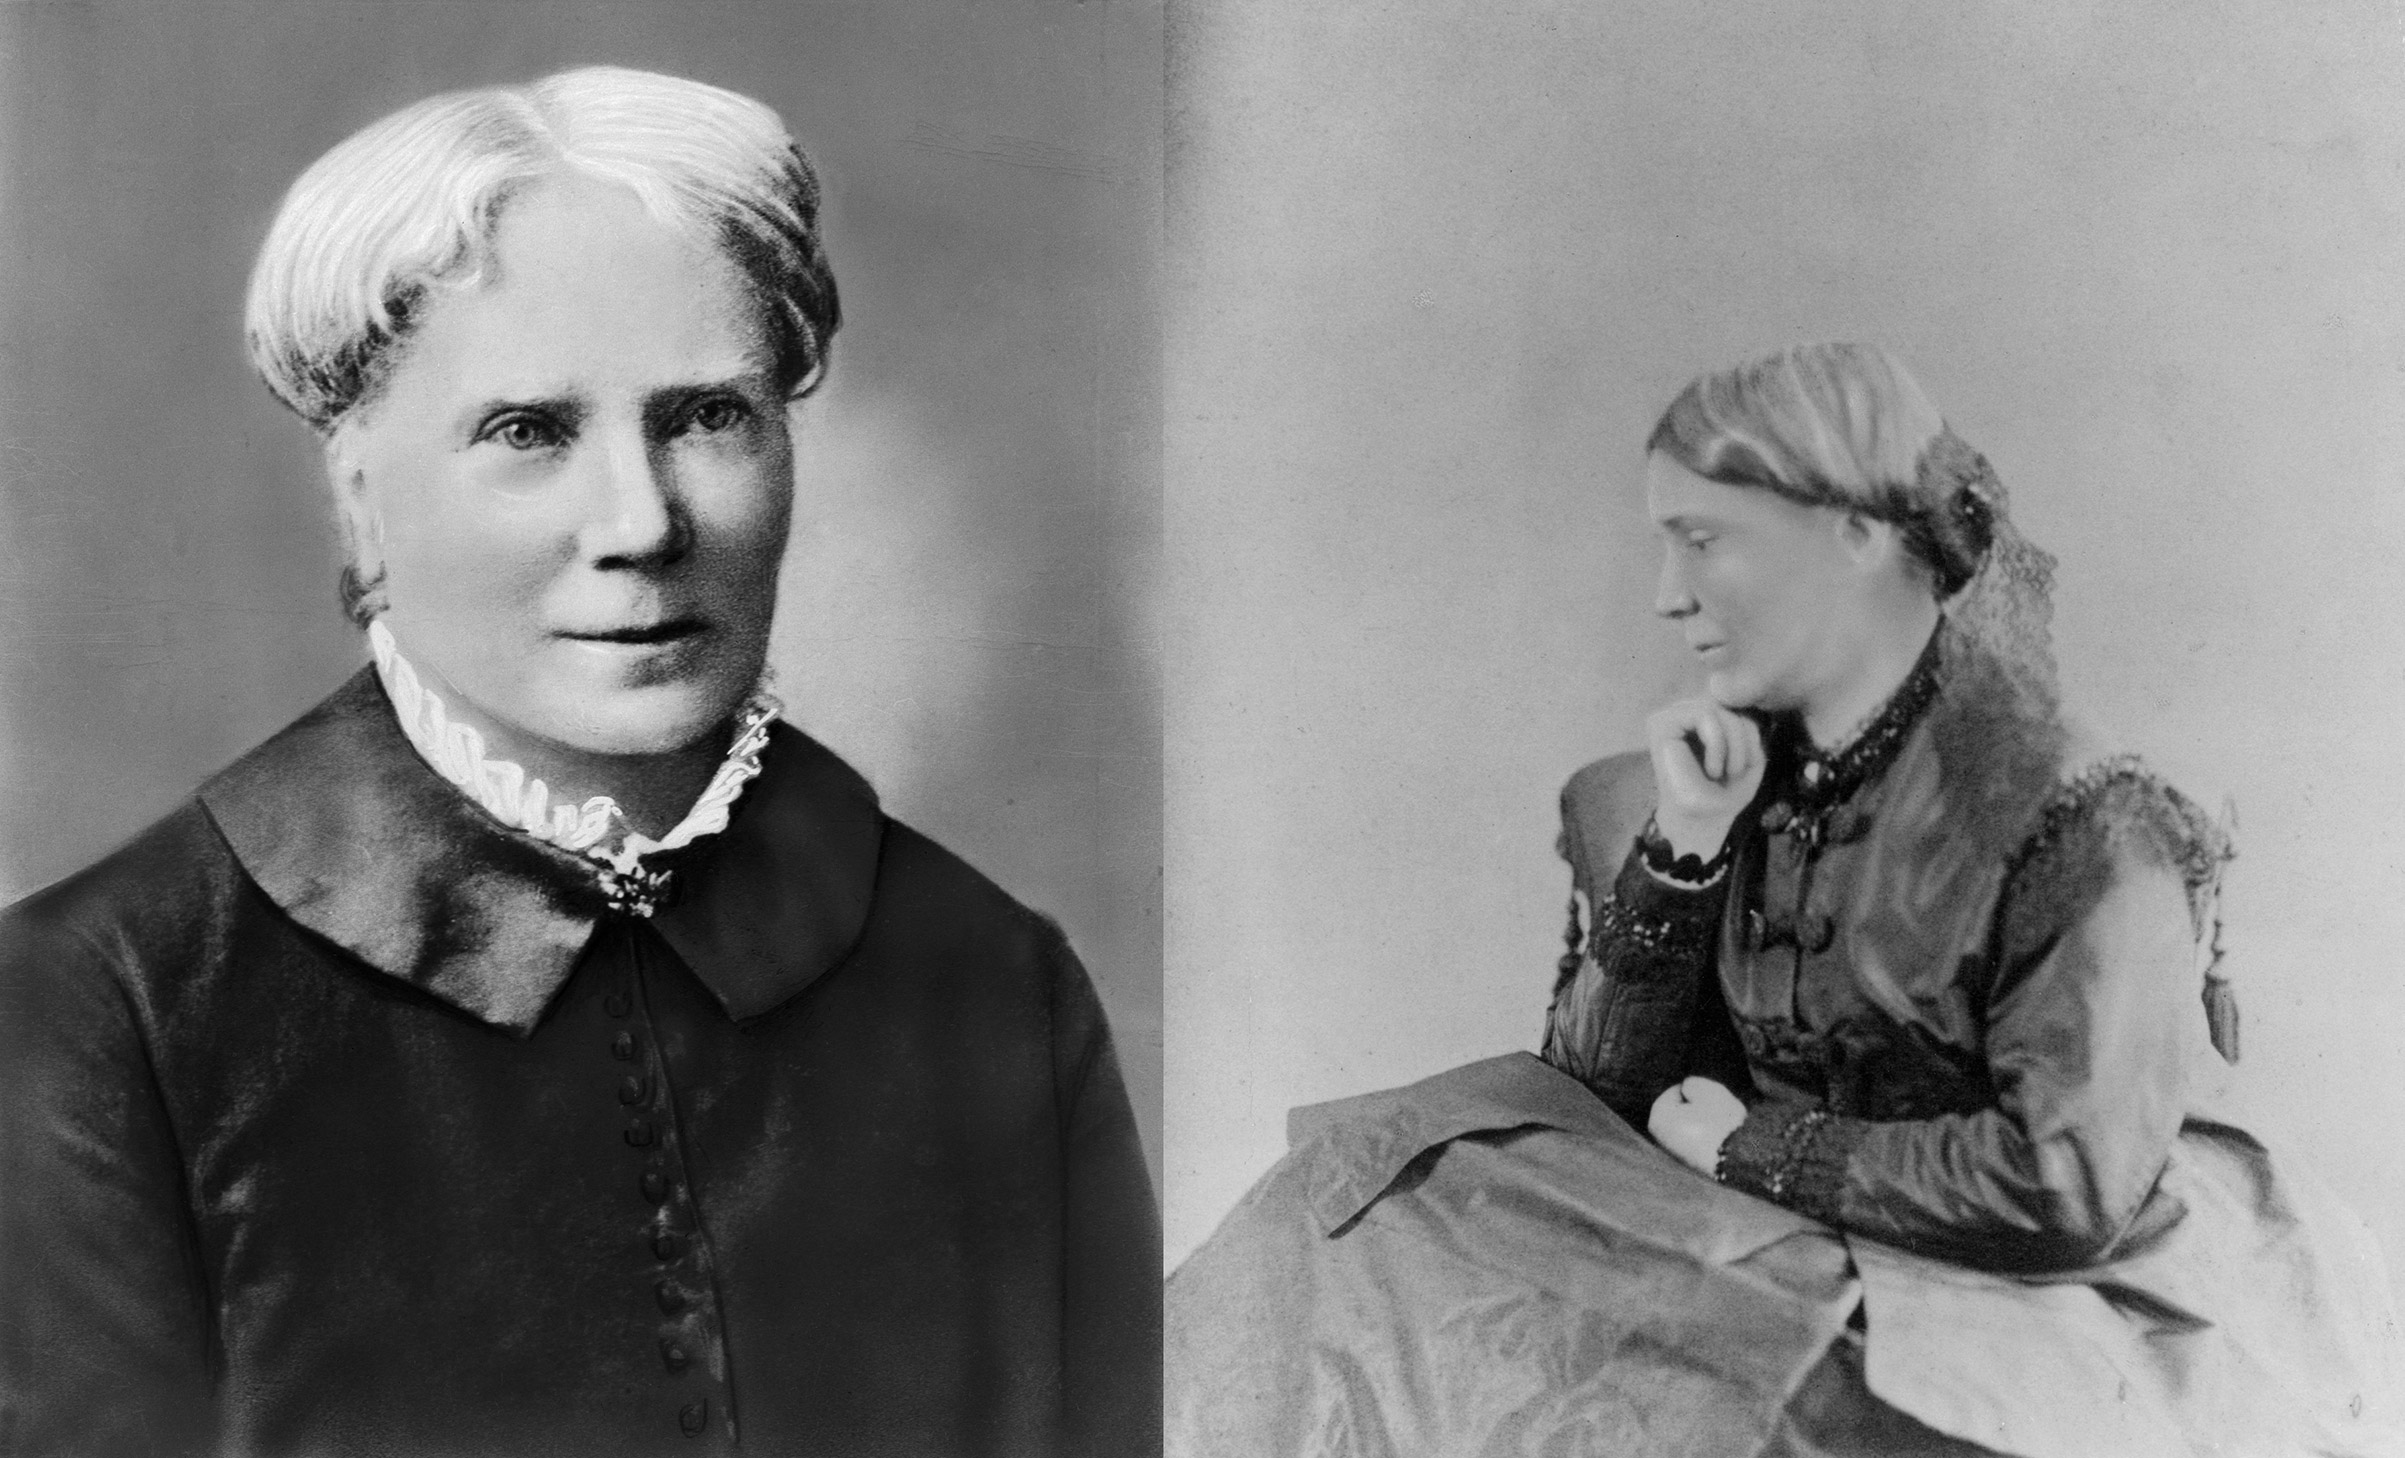 English-born doctors and sisters Elizabeth Blackwell (L) and Emily Blackwell (R). Both circa 1860s.